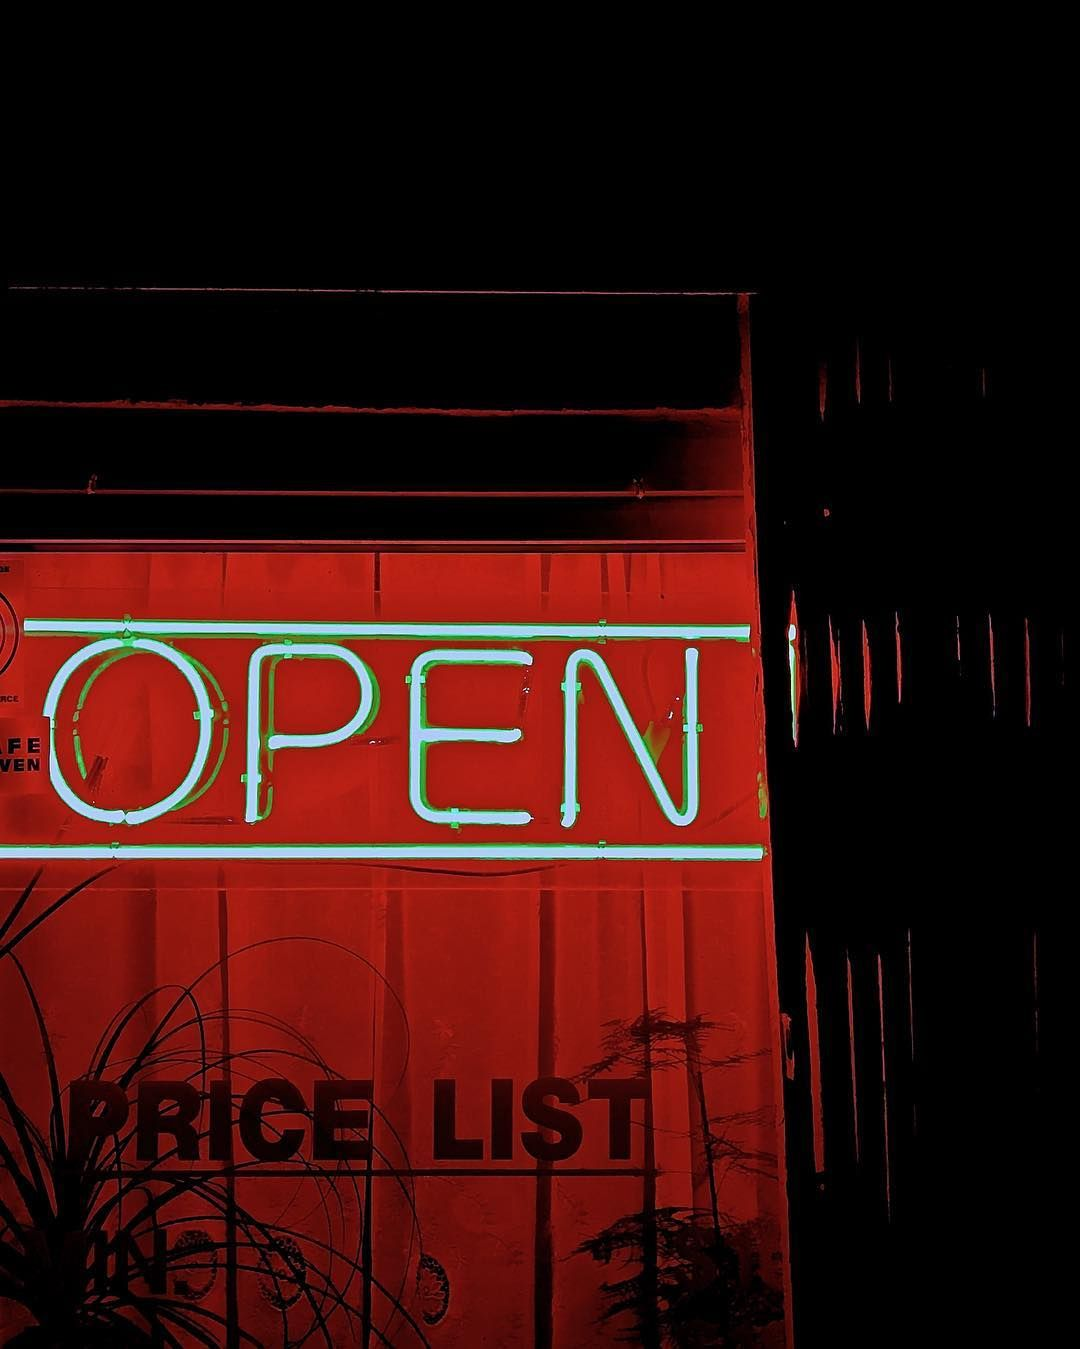 #open #pricelist #neonsigns #neon #neonphotography #newyork_instagram #newyork_ig #openlate #nycatnight #nightphotography #nycphotography #cityphotography #urbanphotography #streetphotography #nycwindows #window #ig_nycity #insta_nyc #instagram_nyc #insta_noir #urbanbeauty #nycbeauty #newyorkexplored #nycexplored #what_i_saw_in_nyc #redlight